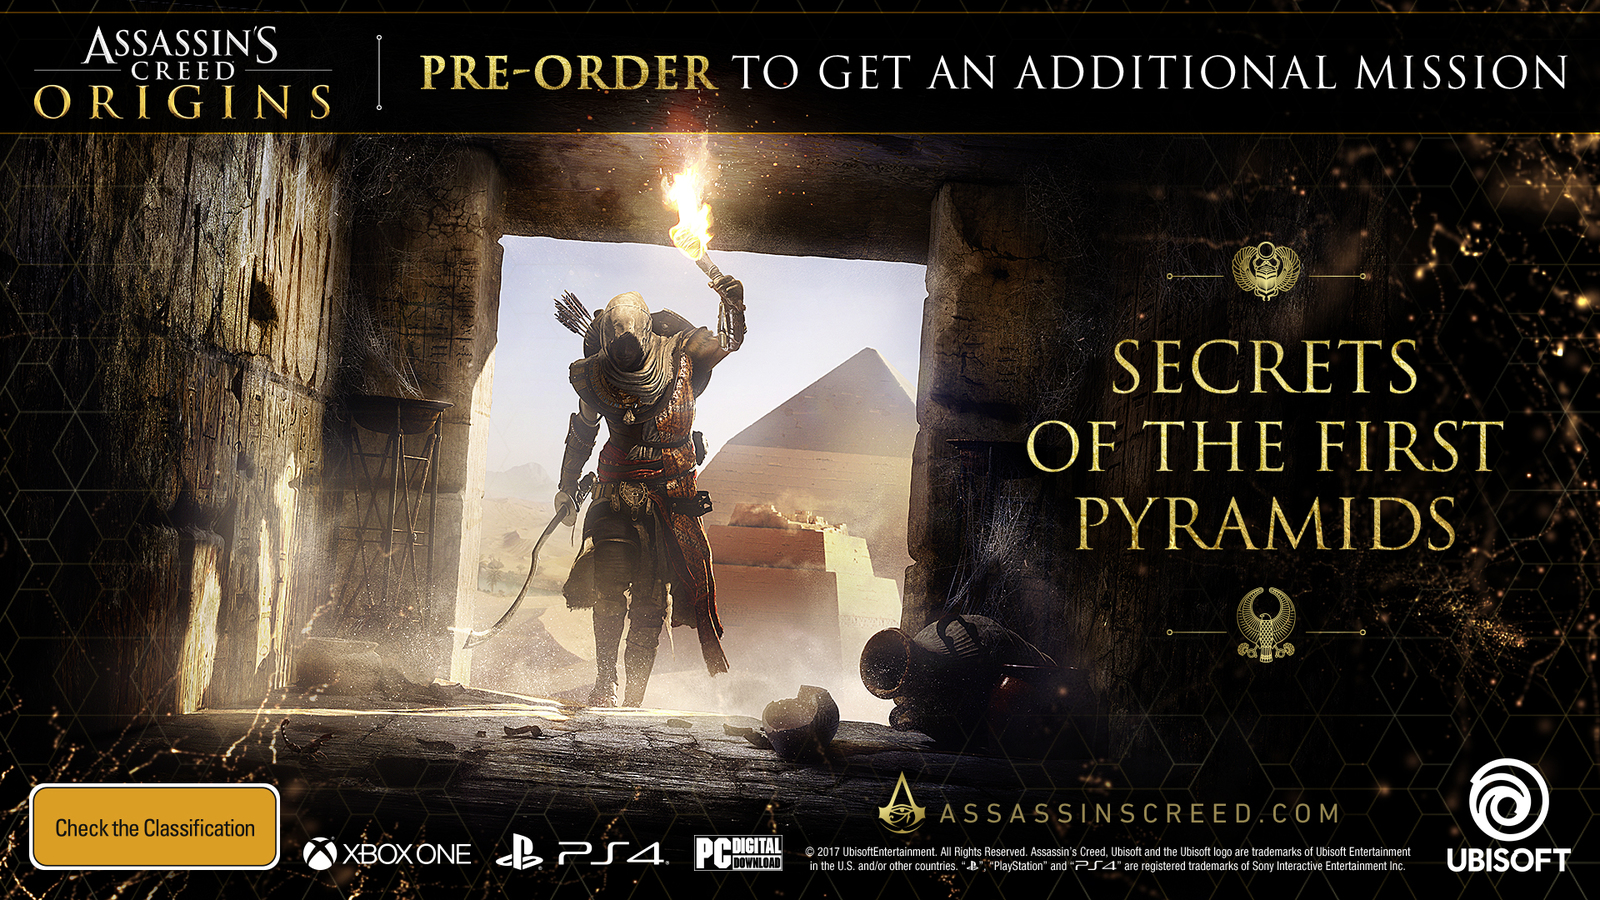 Assassin's Creed Origins for Xbox One image